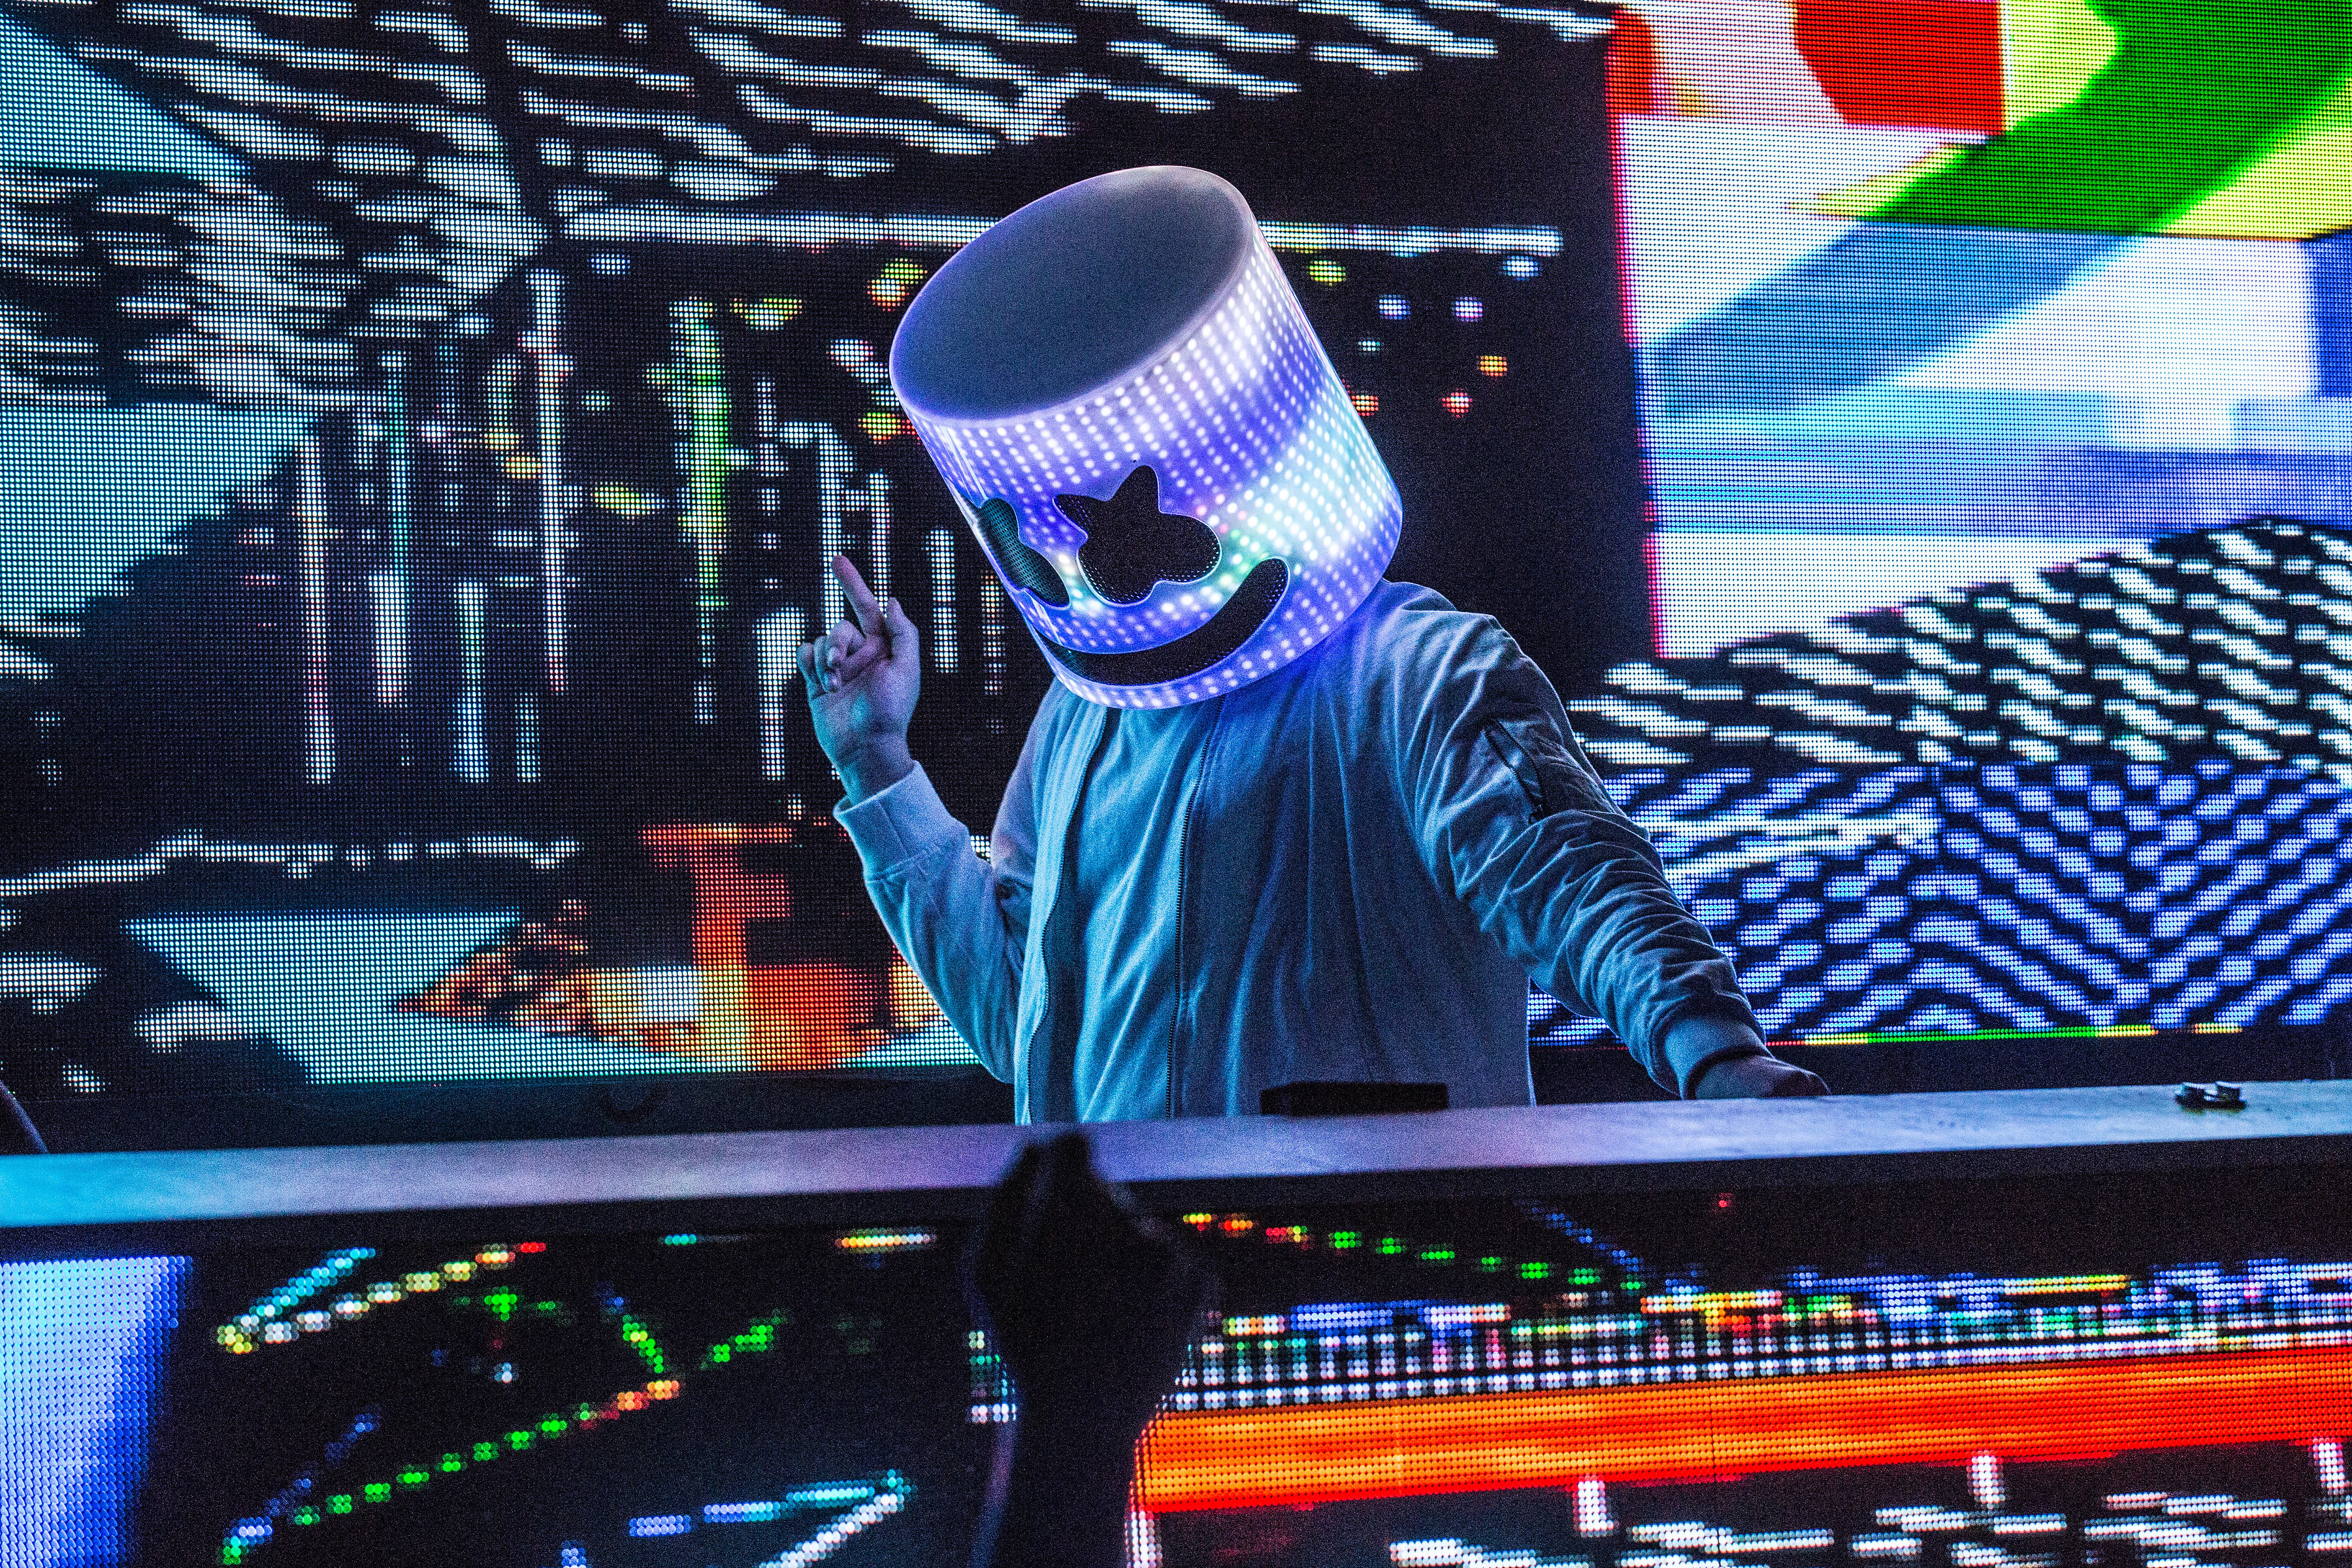 Marshmello 4k 2017 Iphone, HD Music, 4k Wallpapers, Images ...